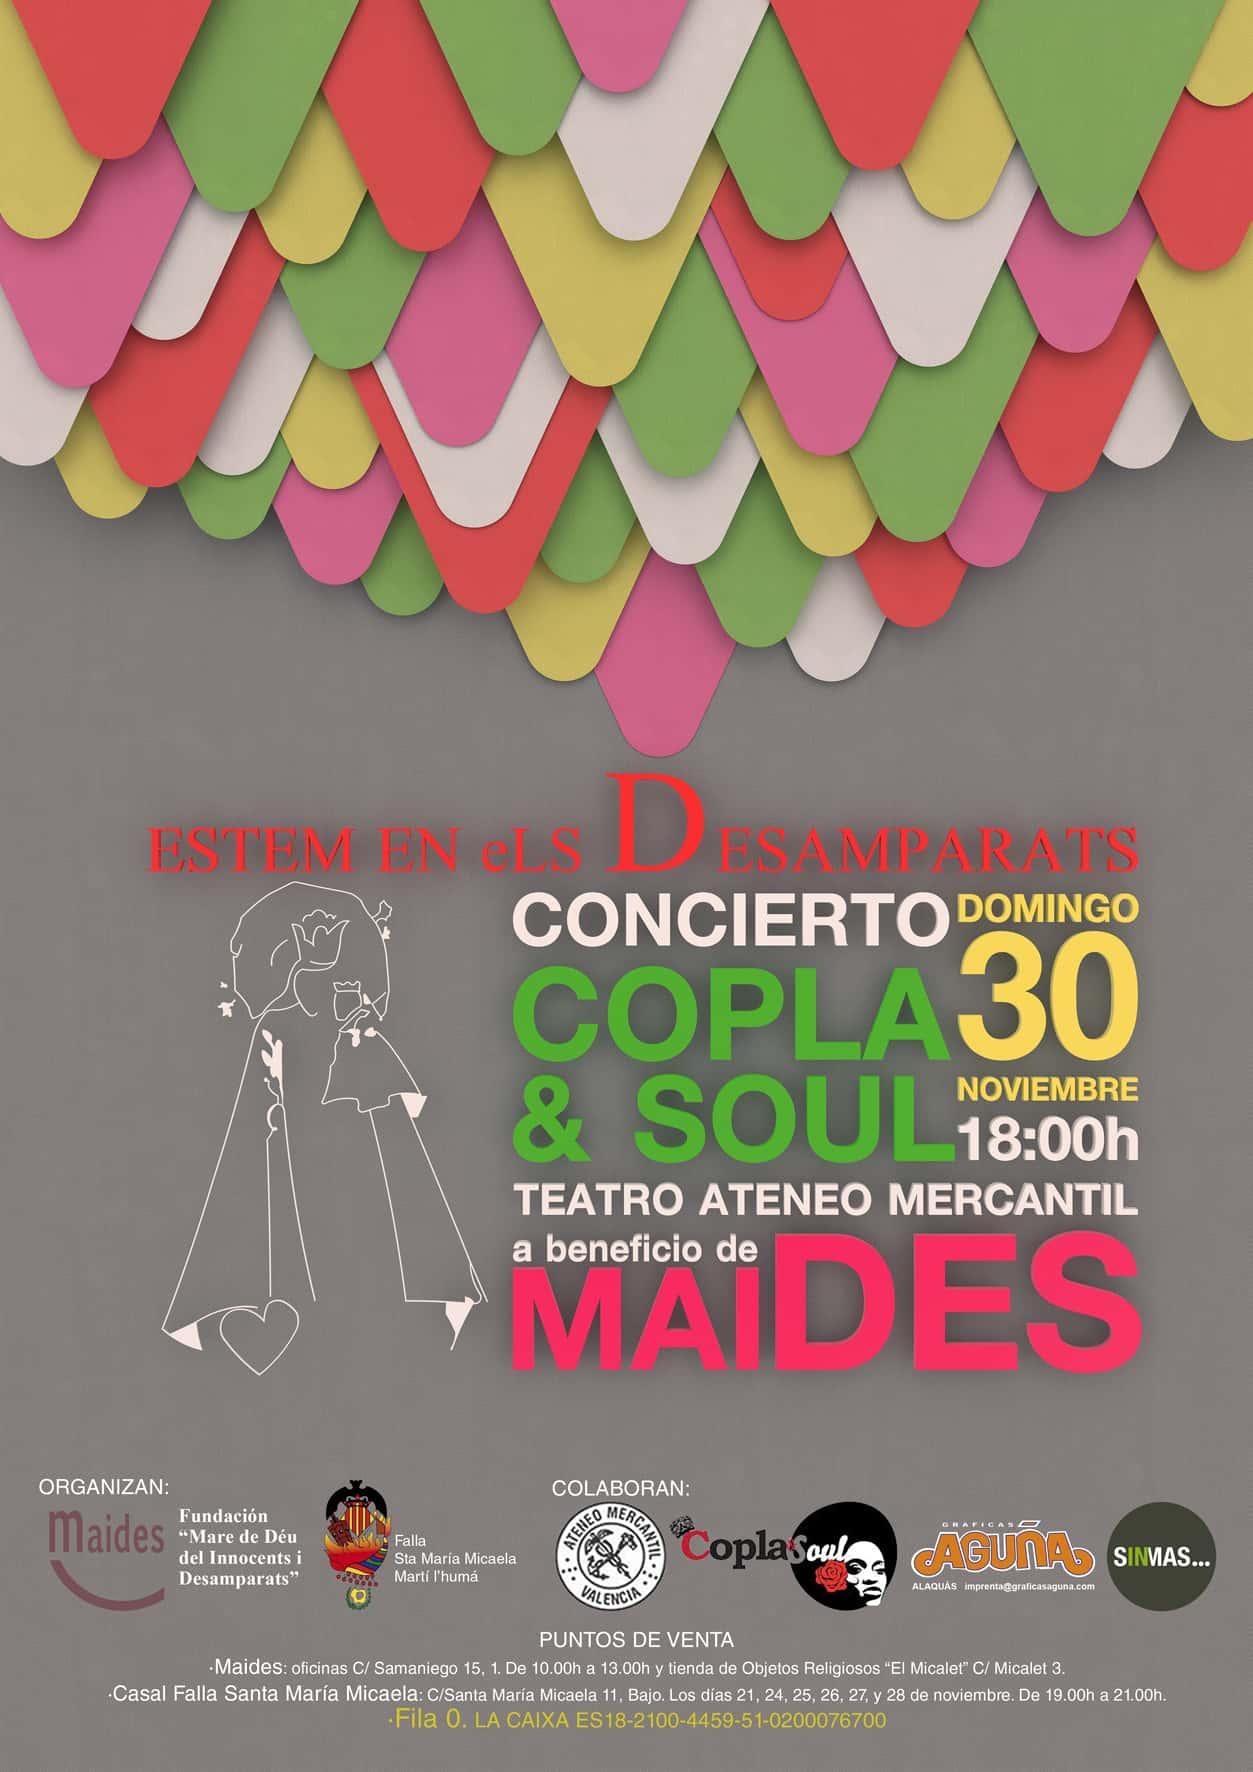 Concierto in favor of MAIDES Falla Santa Maria Micaela – Martin the humane